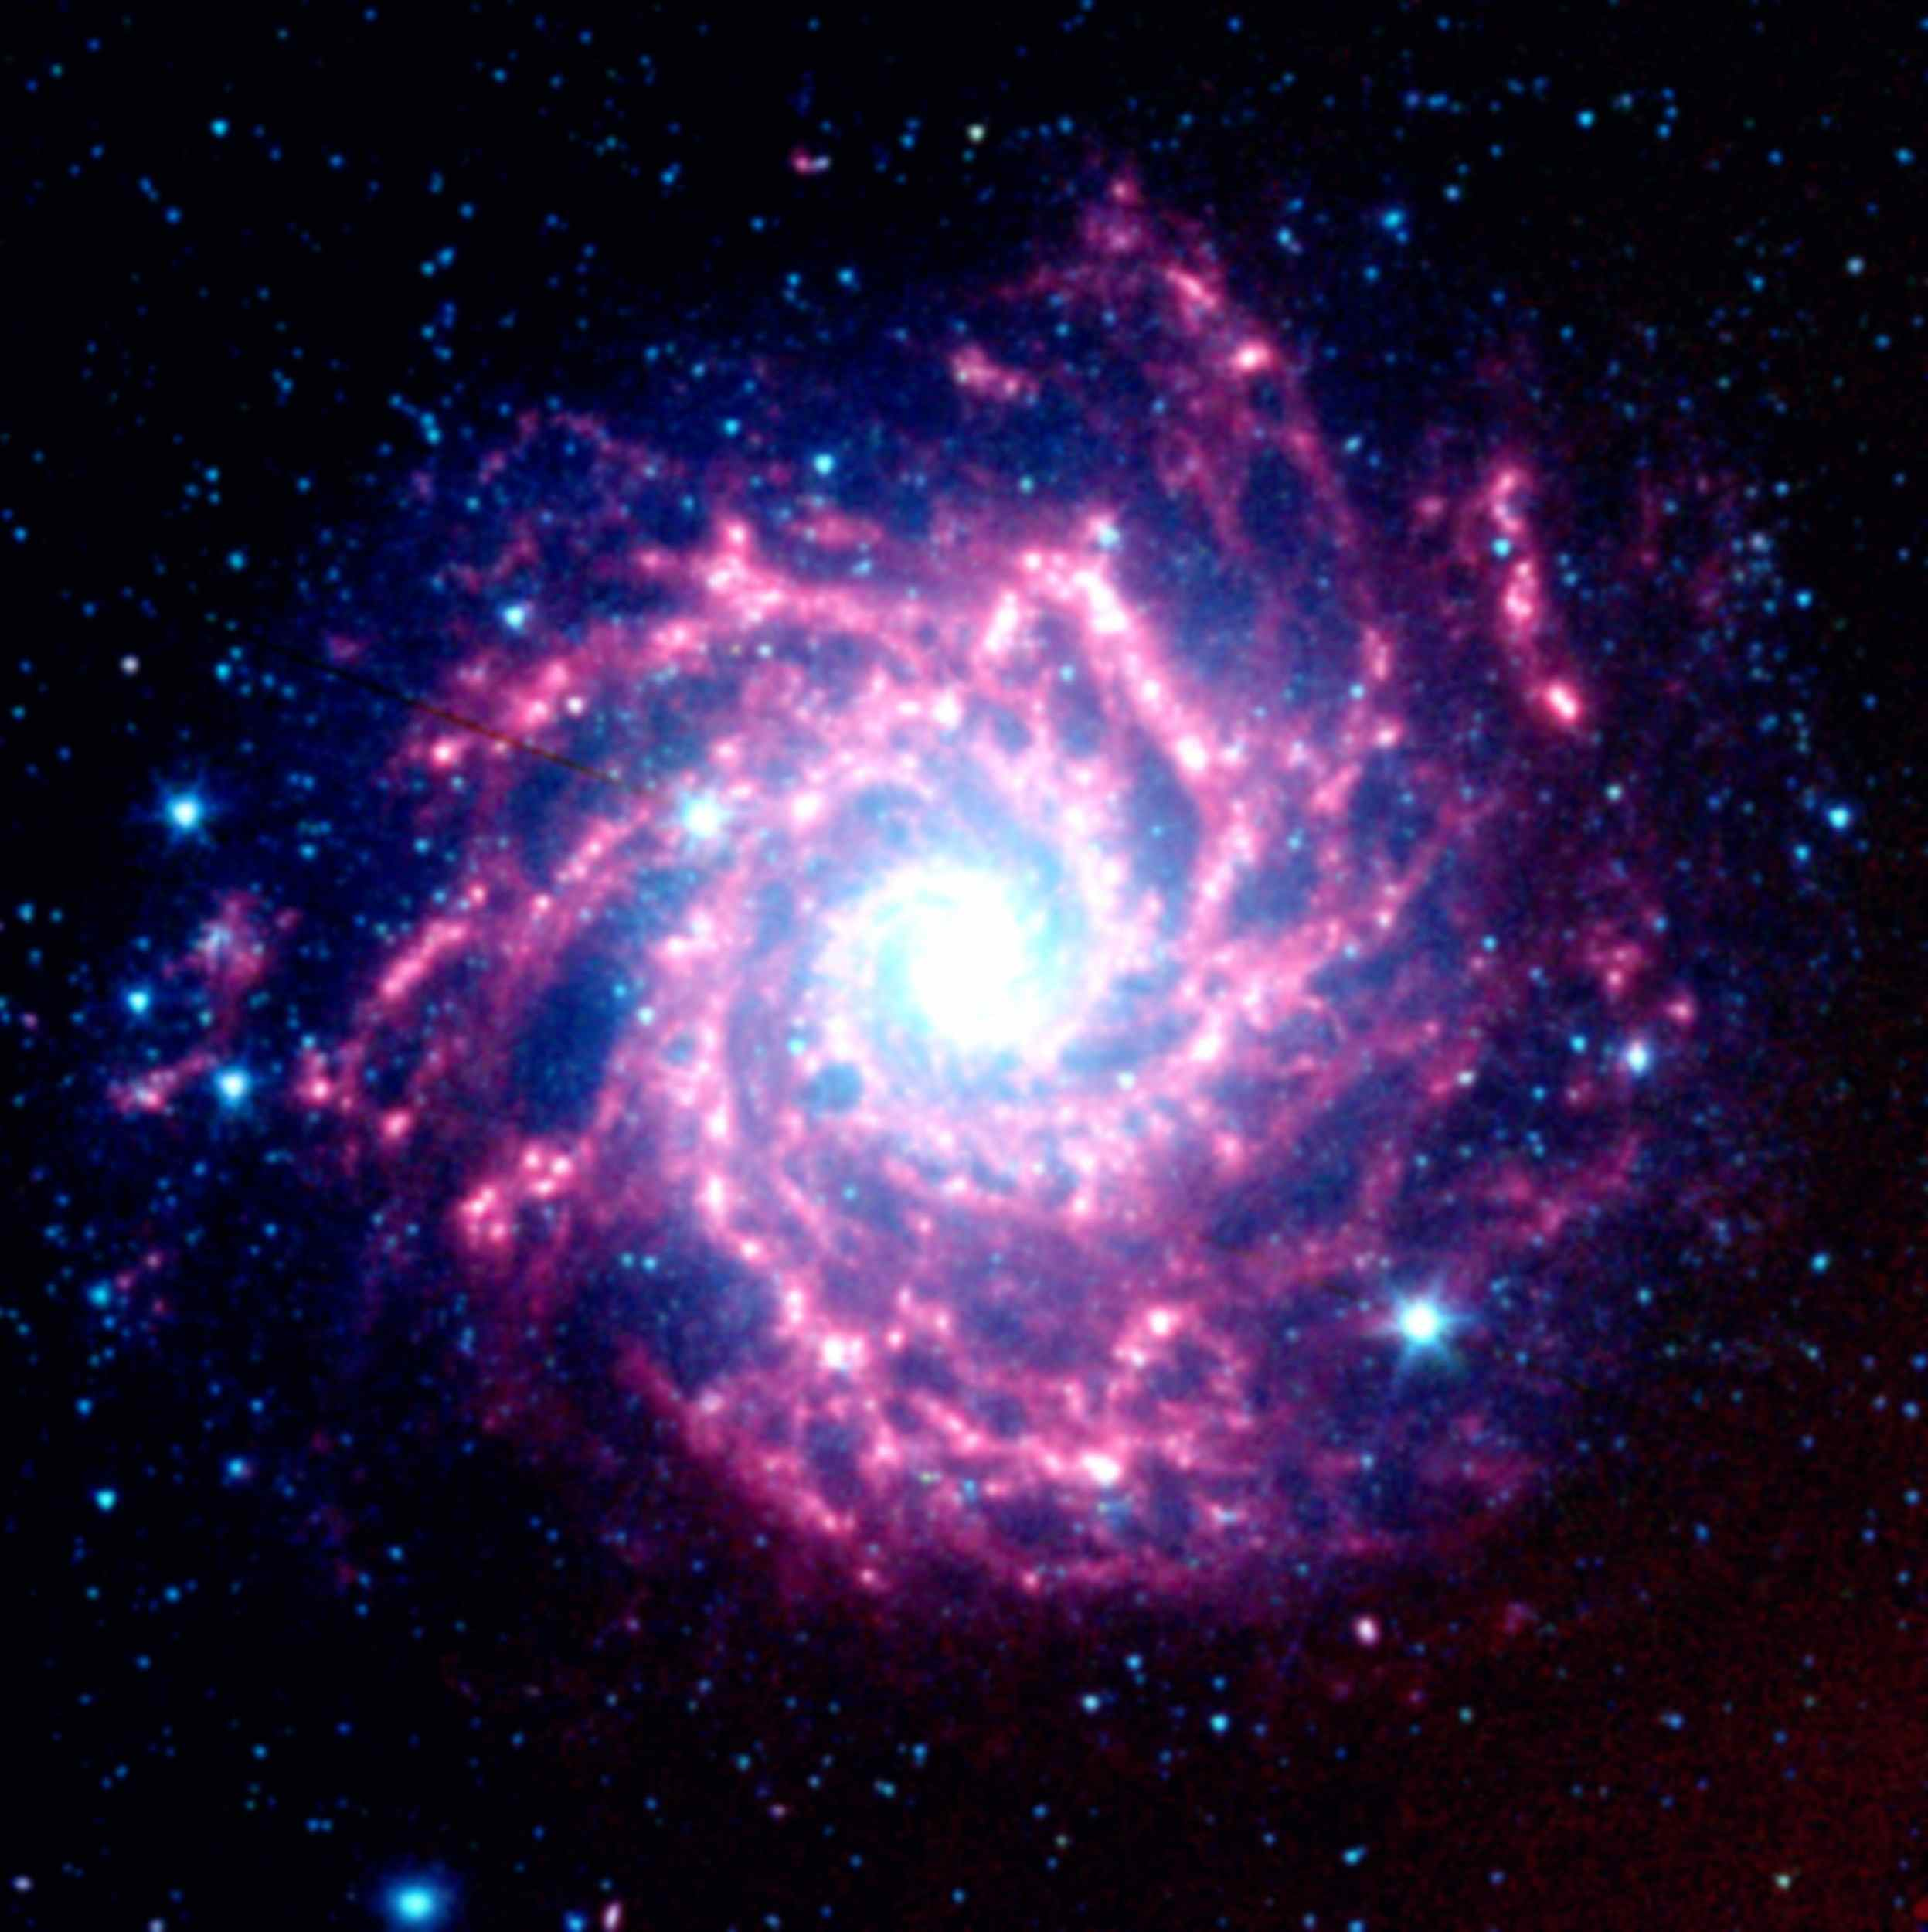 Astronomers using NASA's Spitzer Space Telescope have spotted a 'dust factory' 30 million light-years away in the spiral galaxy M74. The factory is located at the scene of a massive star's explosive death, or supernova.